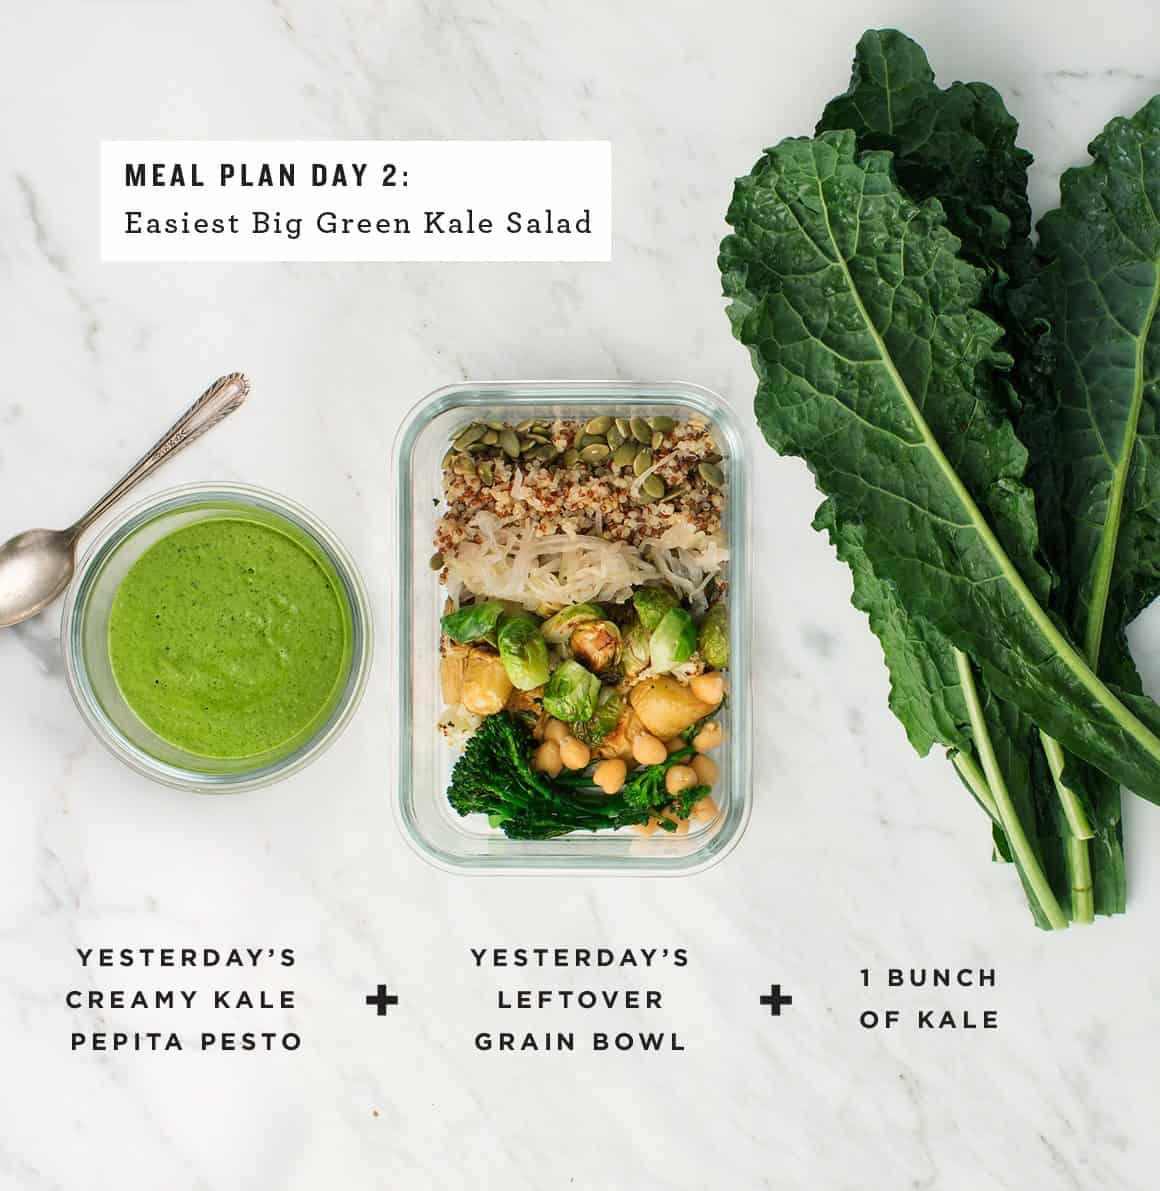 Big Green Kale Salad with Creamy Kale Pepita Pesto